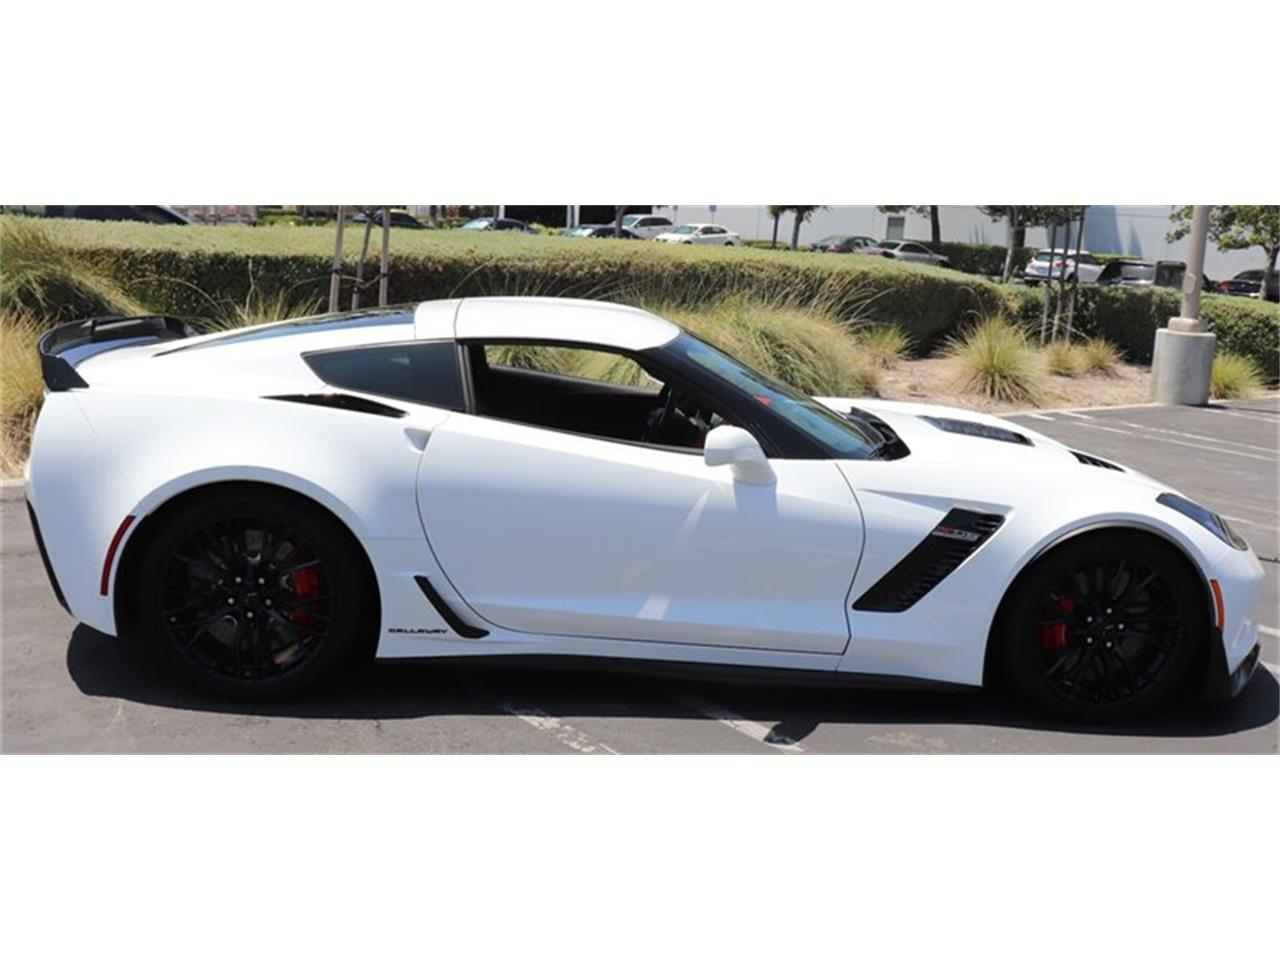 Large Picture of '17 Chevrolet Corvette Z06 located in Anaheim California - $98,900.00 Offered by West Coast Corvettes - QIGW